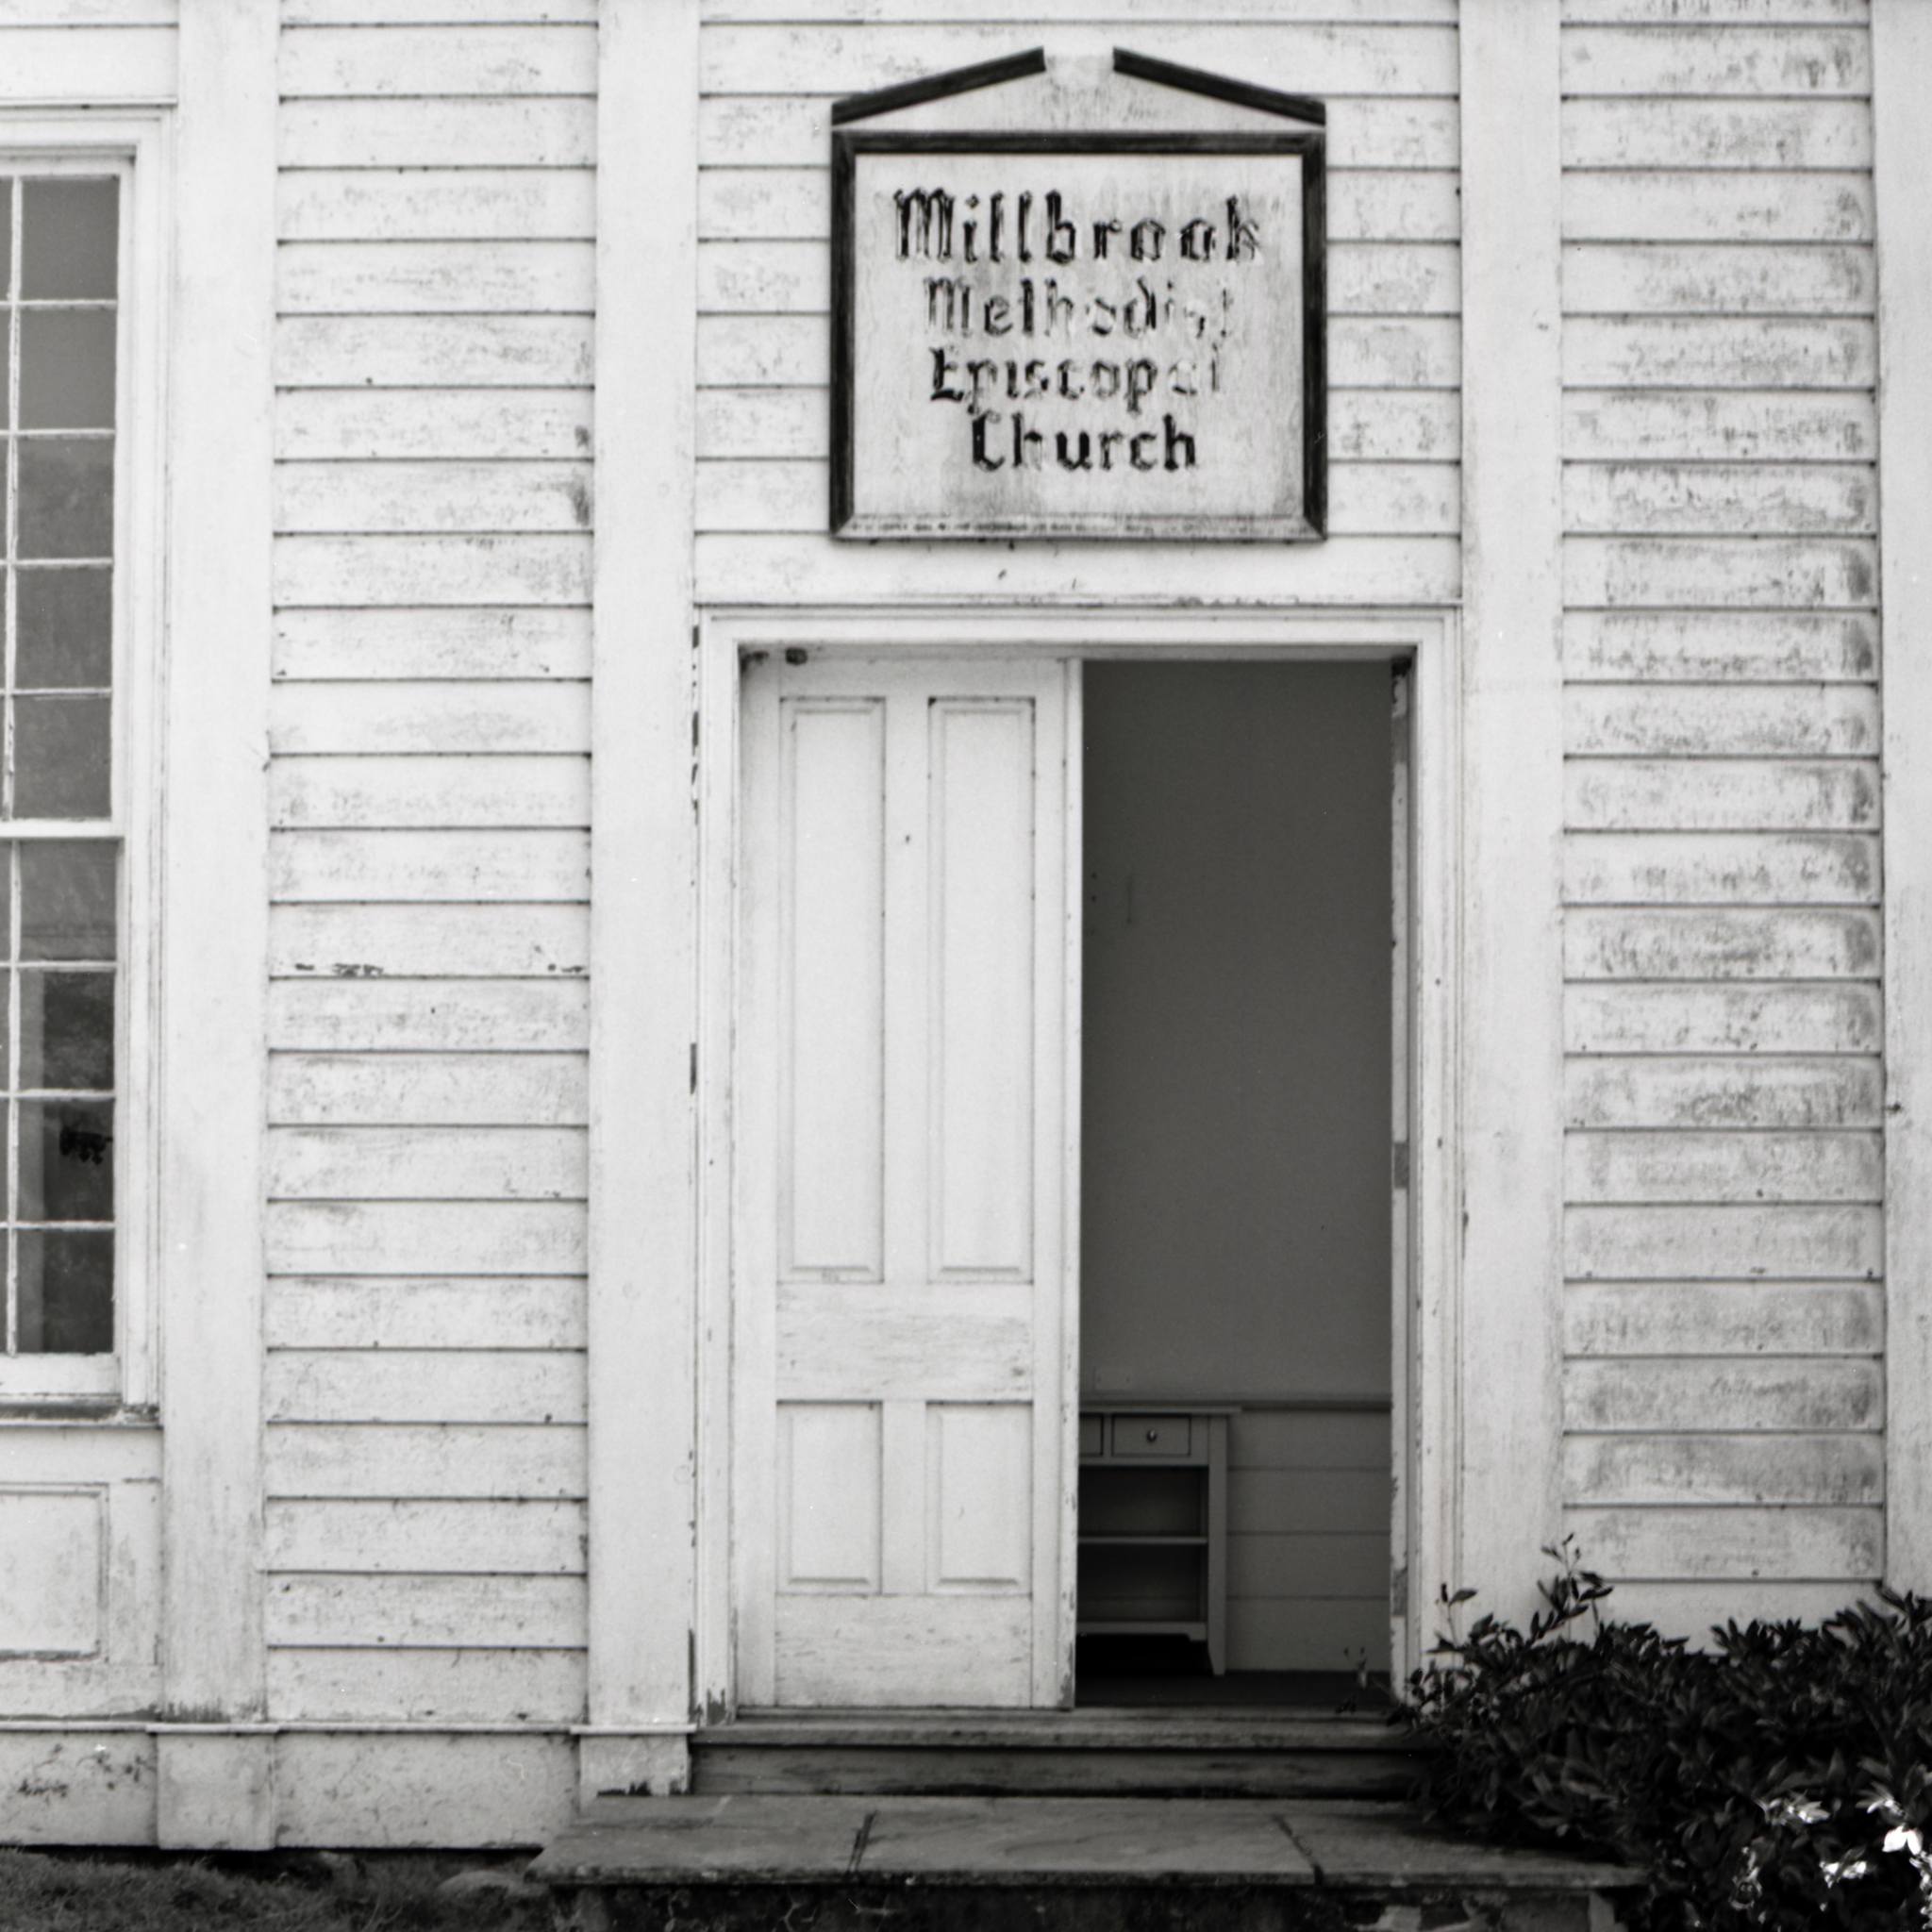 Millbrook Village Methodist Episcopal Church.  Hardwick, New Jersey.